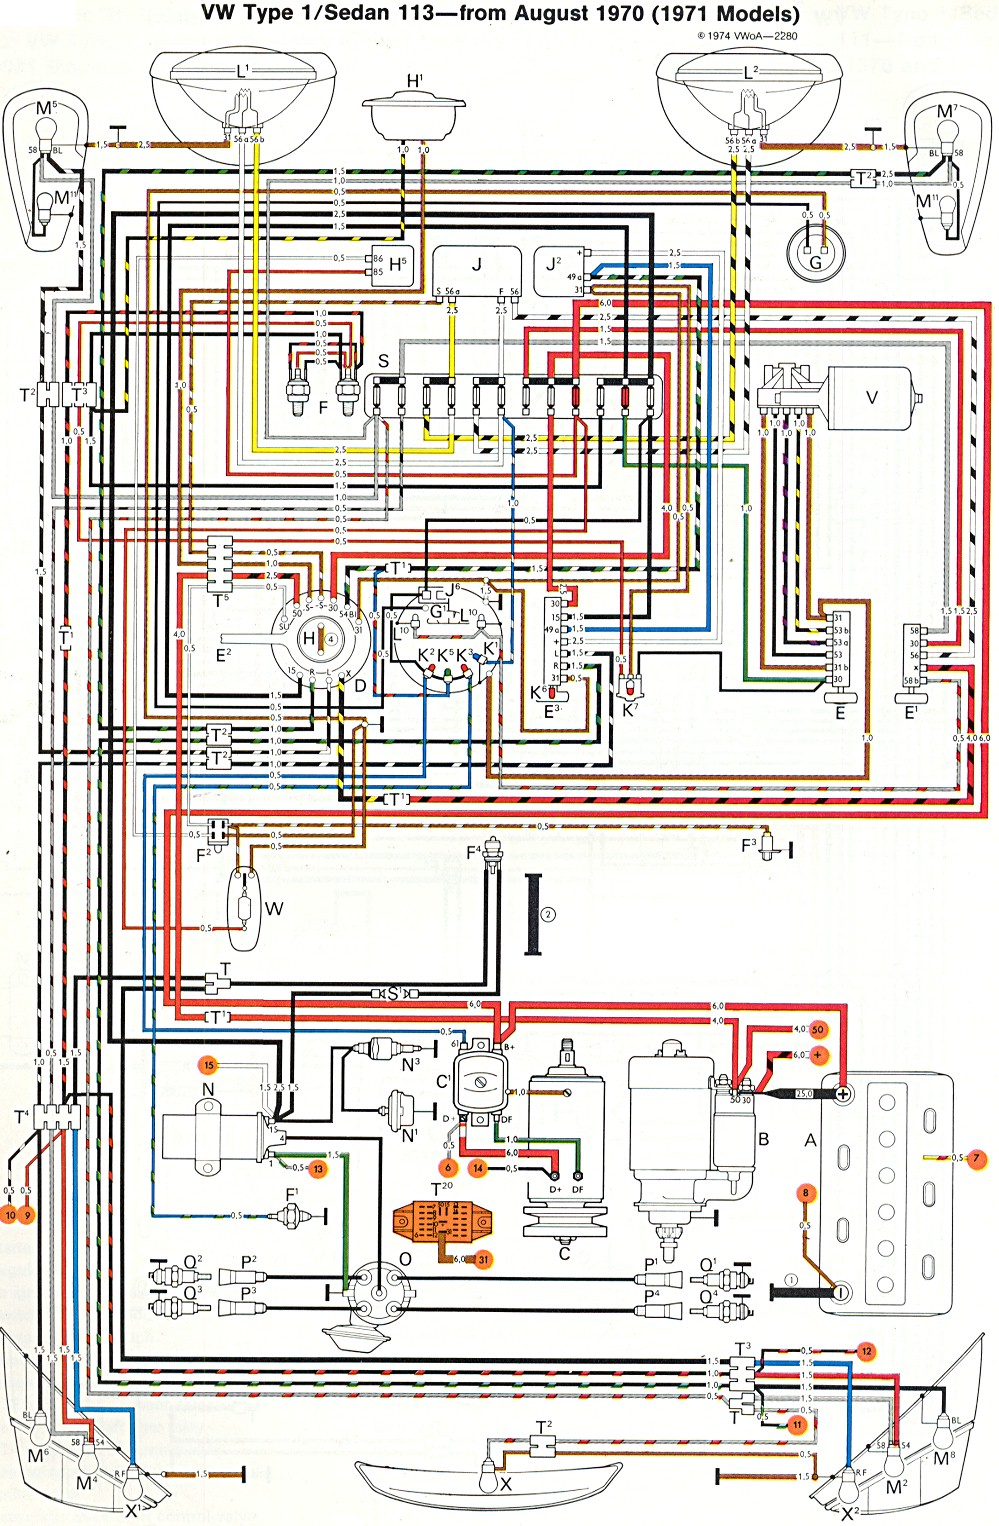 bug_super_71 1971 super beetle wiring diagram thegoldenbug com 1970 vw beetle wiring schematic at n-0.co